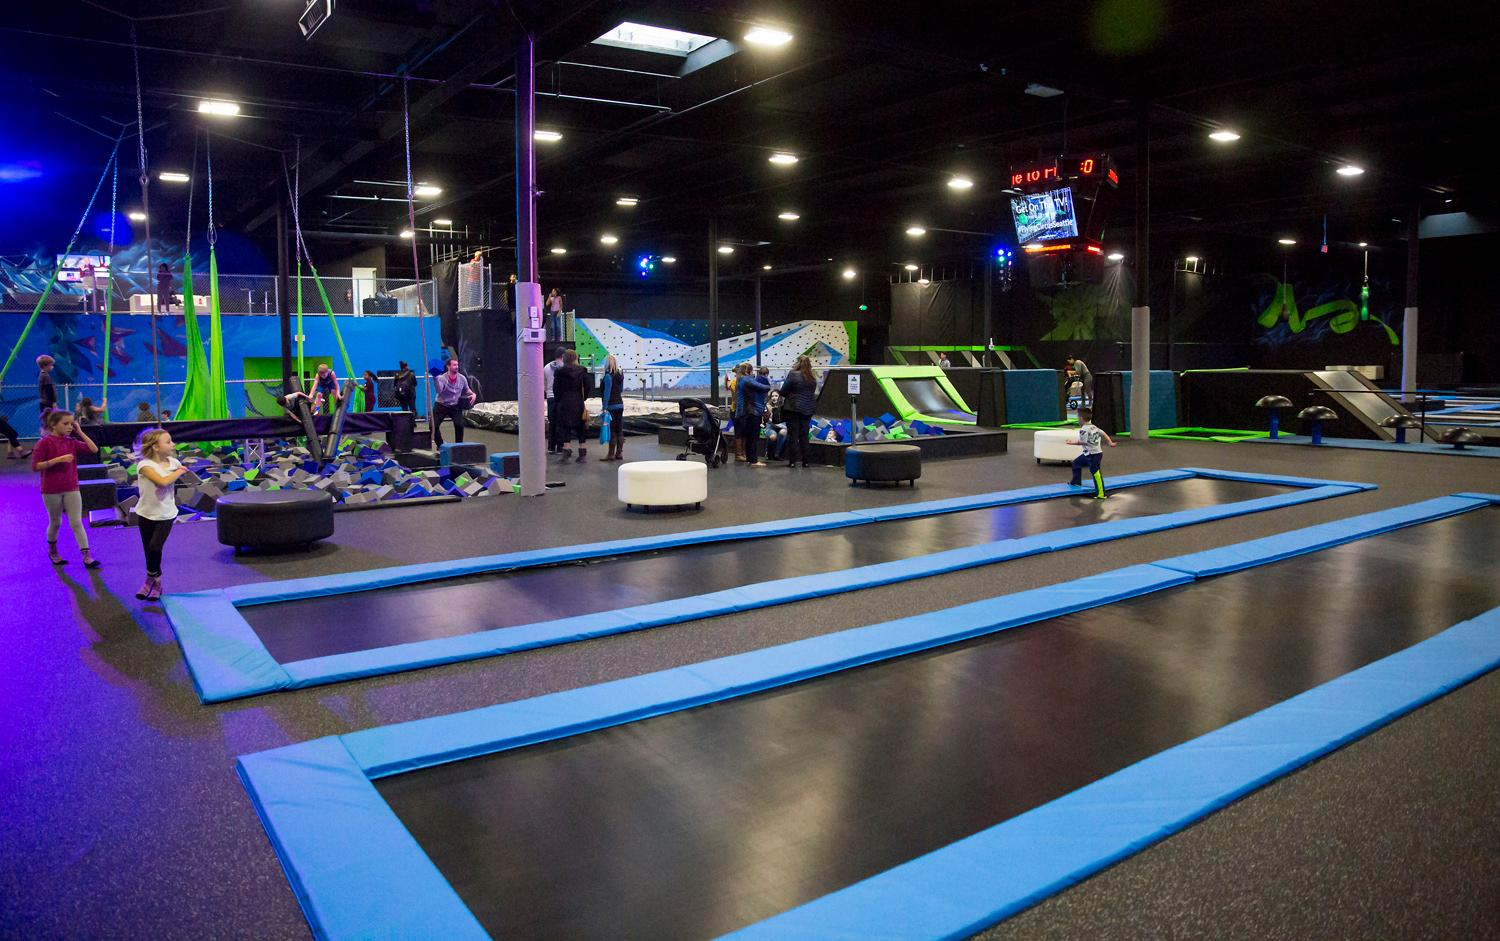 Flying Circus is the world's largest extreme air sports park, located at 455 Andover Park E, Tukwila. Activities include a ninja obstacle course, extreme dodgeball, slacklines, rock climbing wall over a foam pit, and aerial silks. (Sy Bean / Seattle Refined)